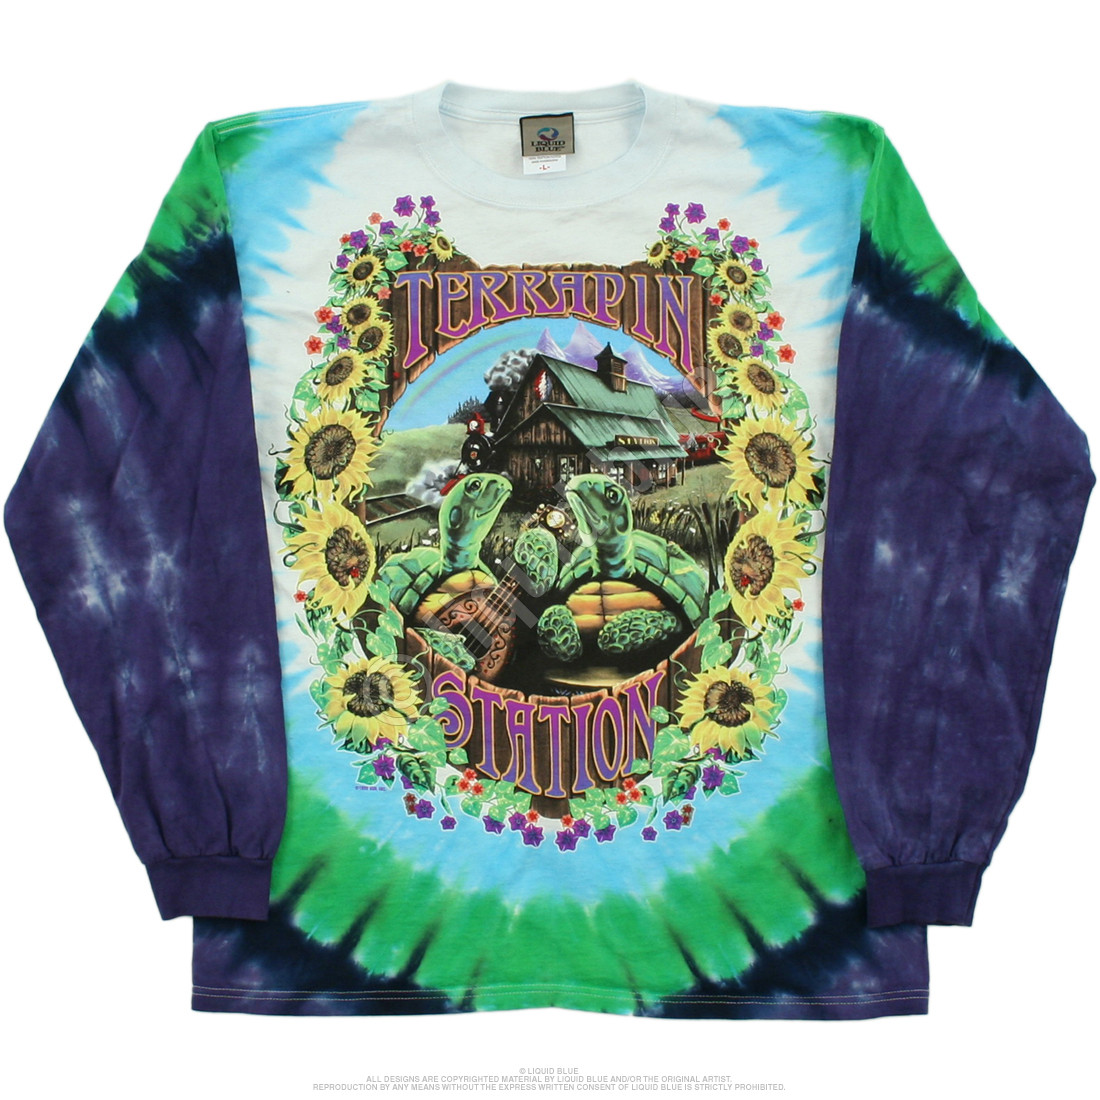 Terrapin Station Tie-Dye Long Sleeve T-Shirt